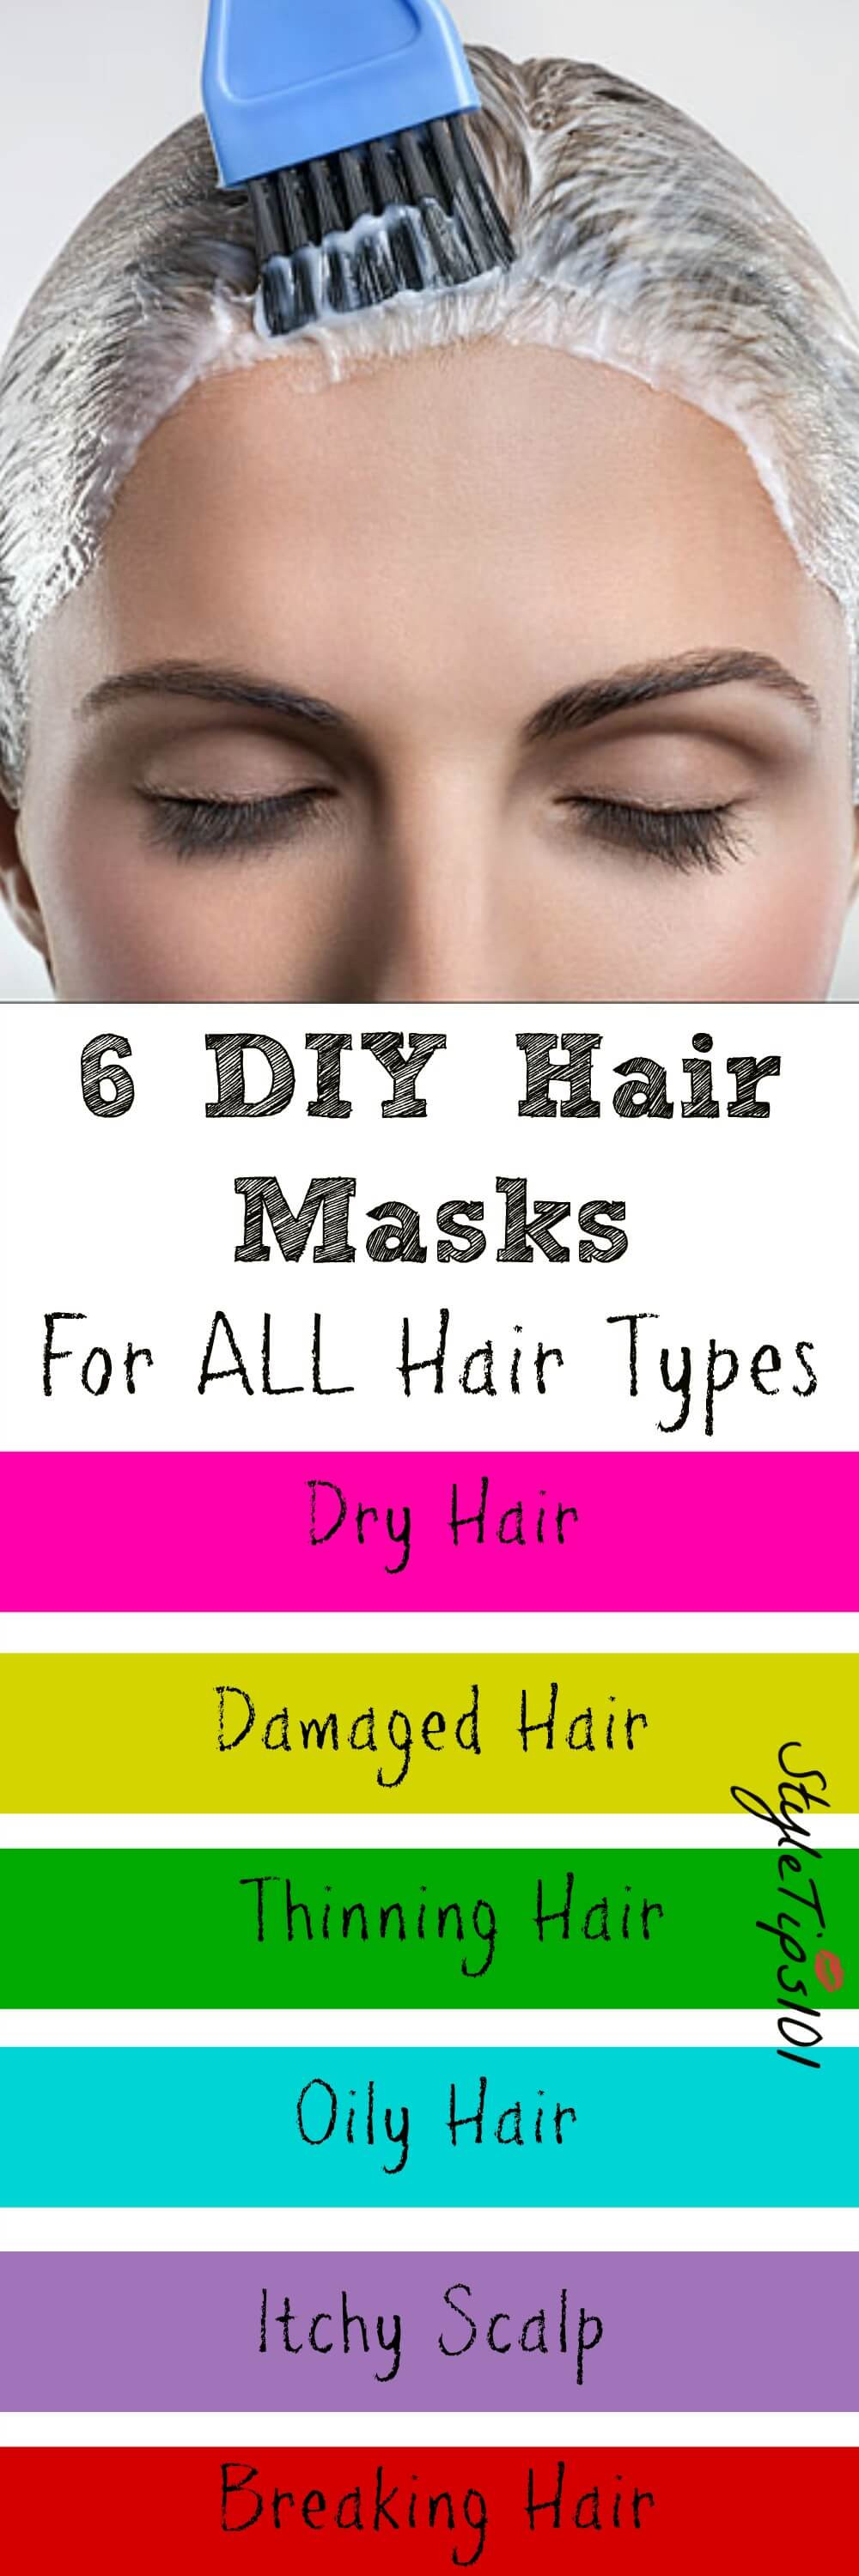 Best ideas about DIY Hair Mask For Dry Hair . Save or Pin 6 DIY Hair Masks For All Hair Types Now.